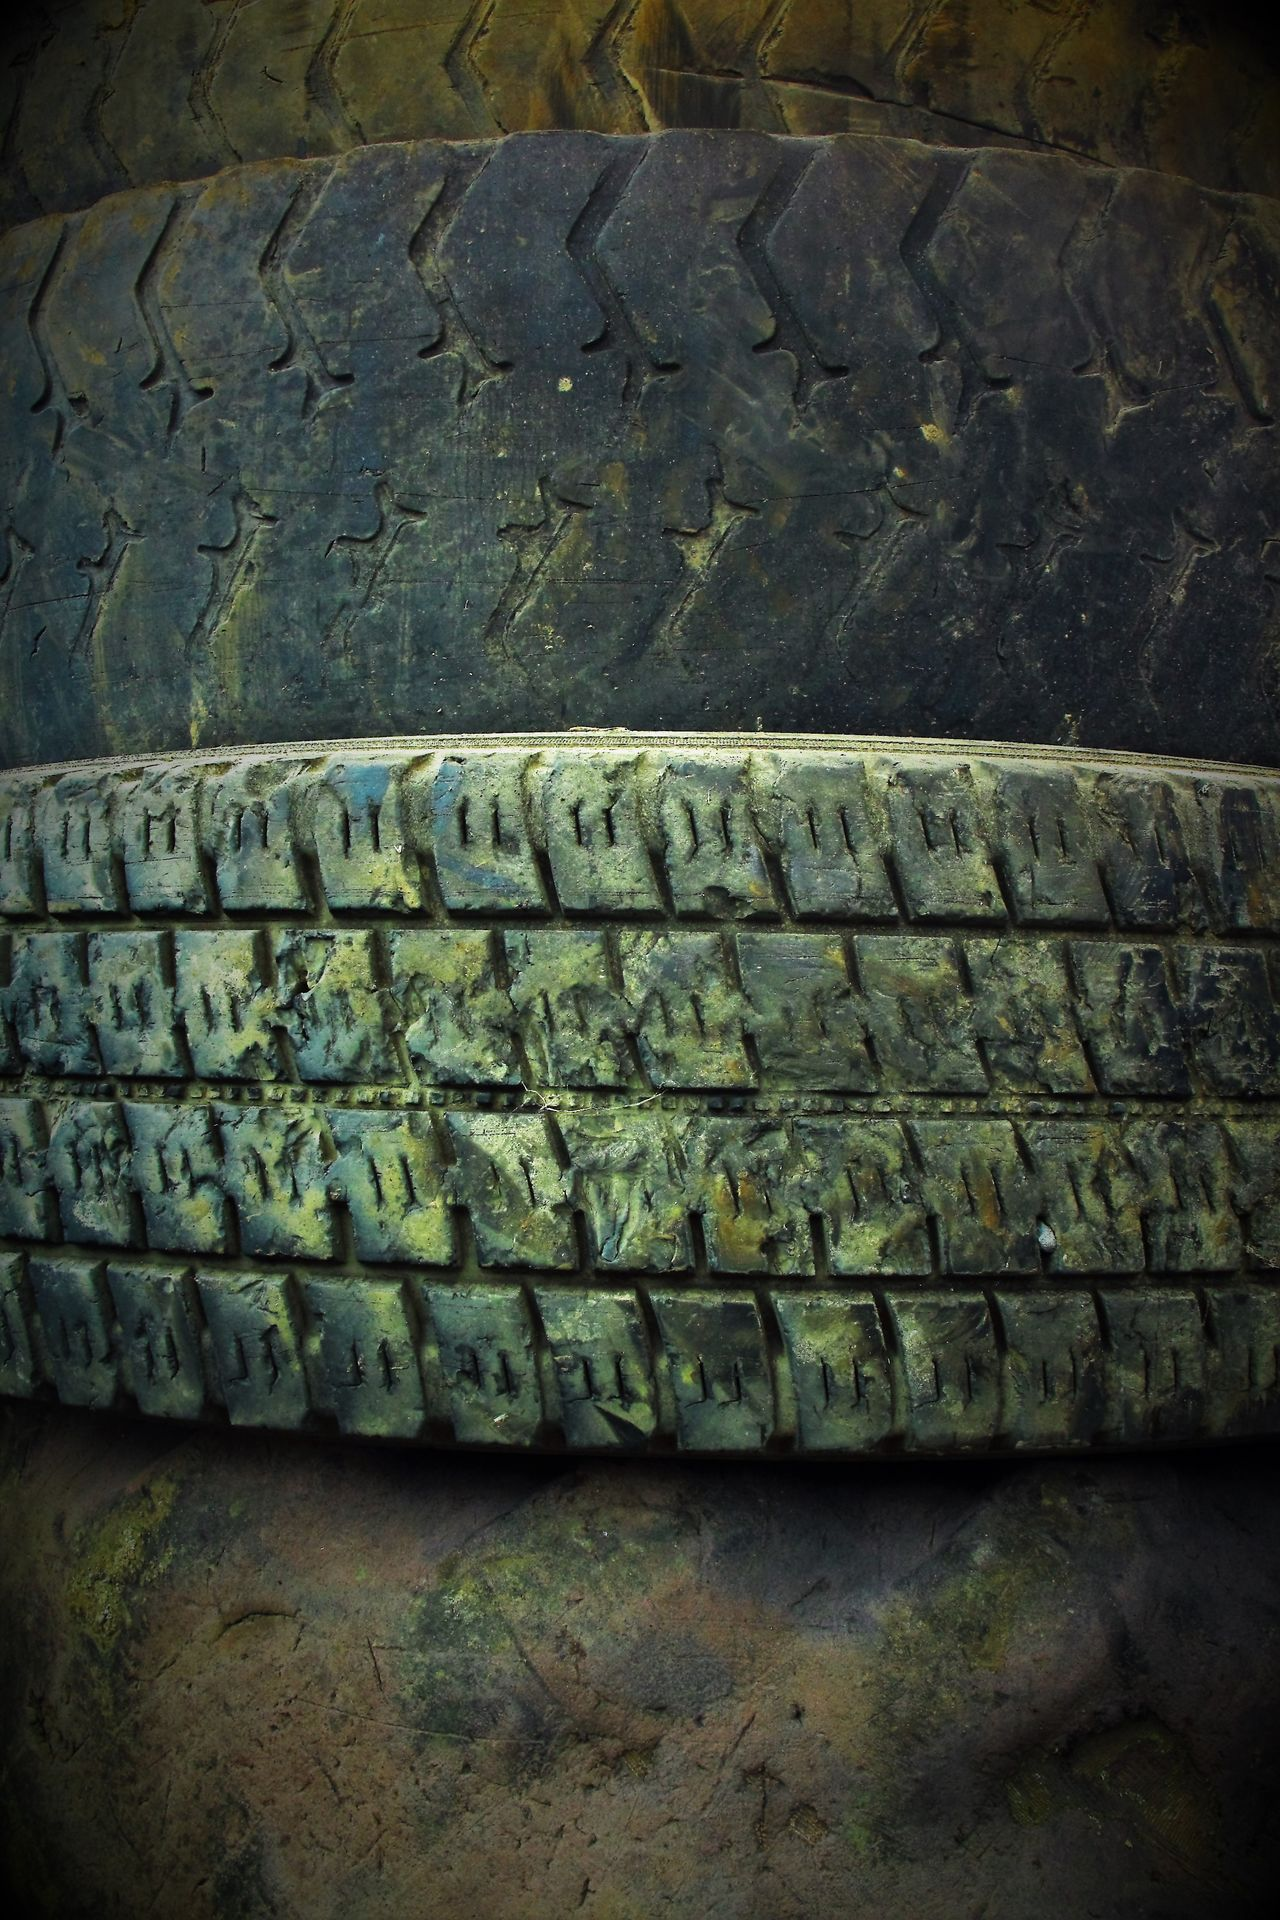 Flat Tired Car Inspection Close-up Day Flat Highprofile No People Pile Profile Picture Repetition Stacked Surface Level The Way Forward Tyres Variations On The Same Theme Weathered Worn Out Beautifully Organized The Drive